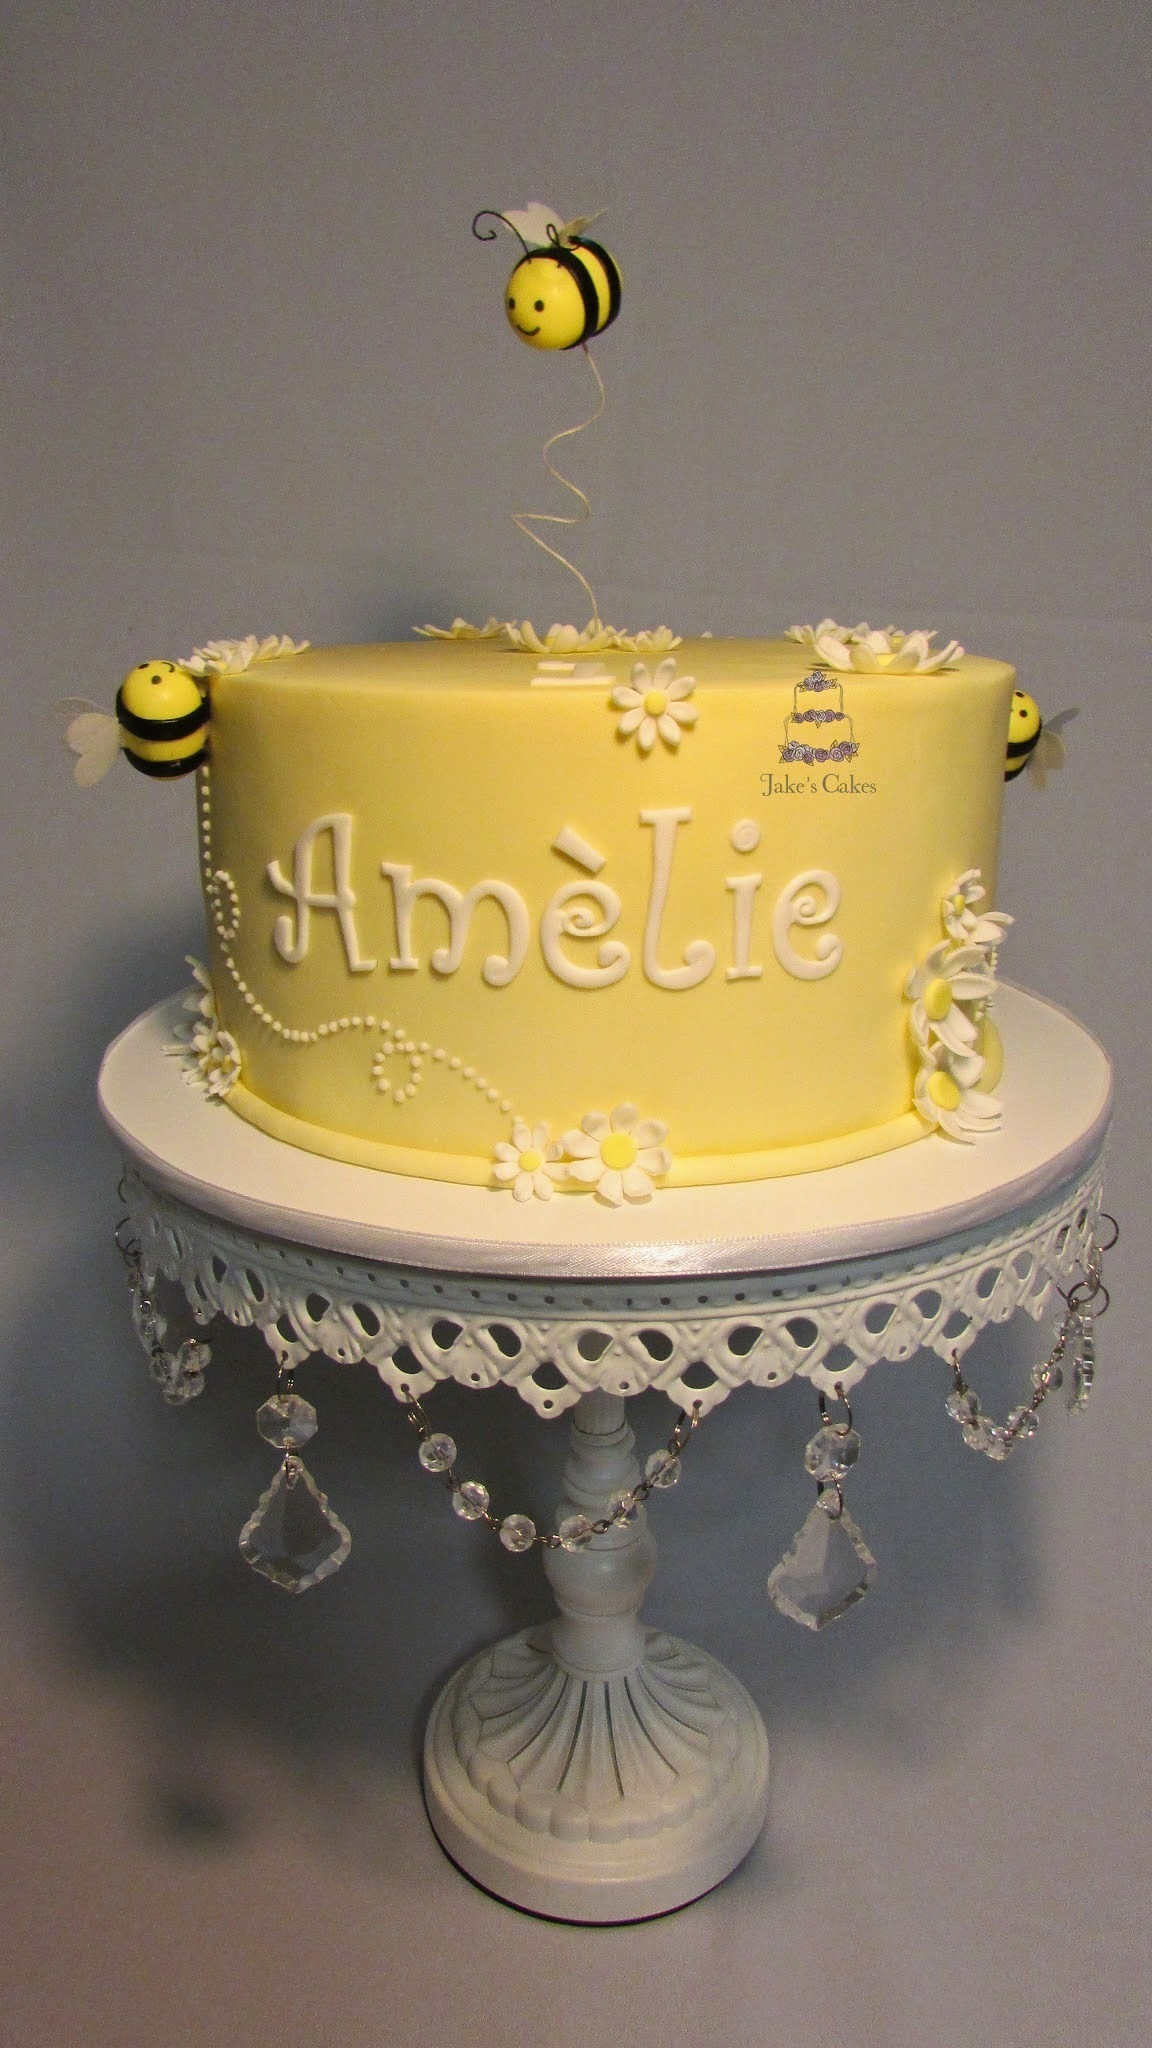 Amelie's First Birthday Cake: Bees and Daisies